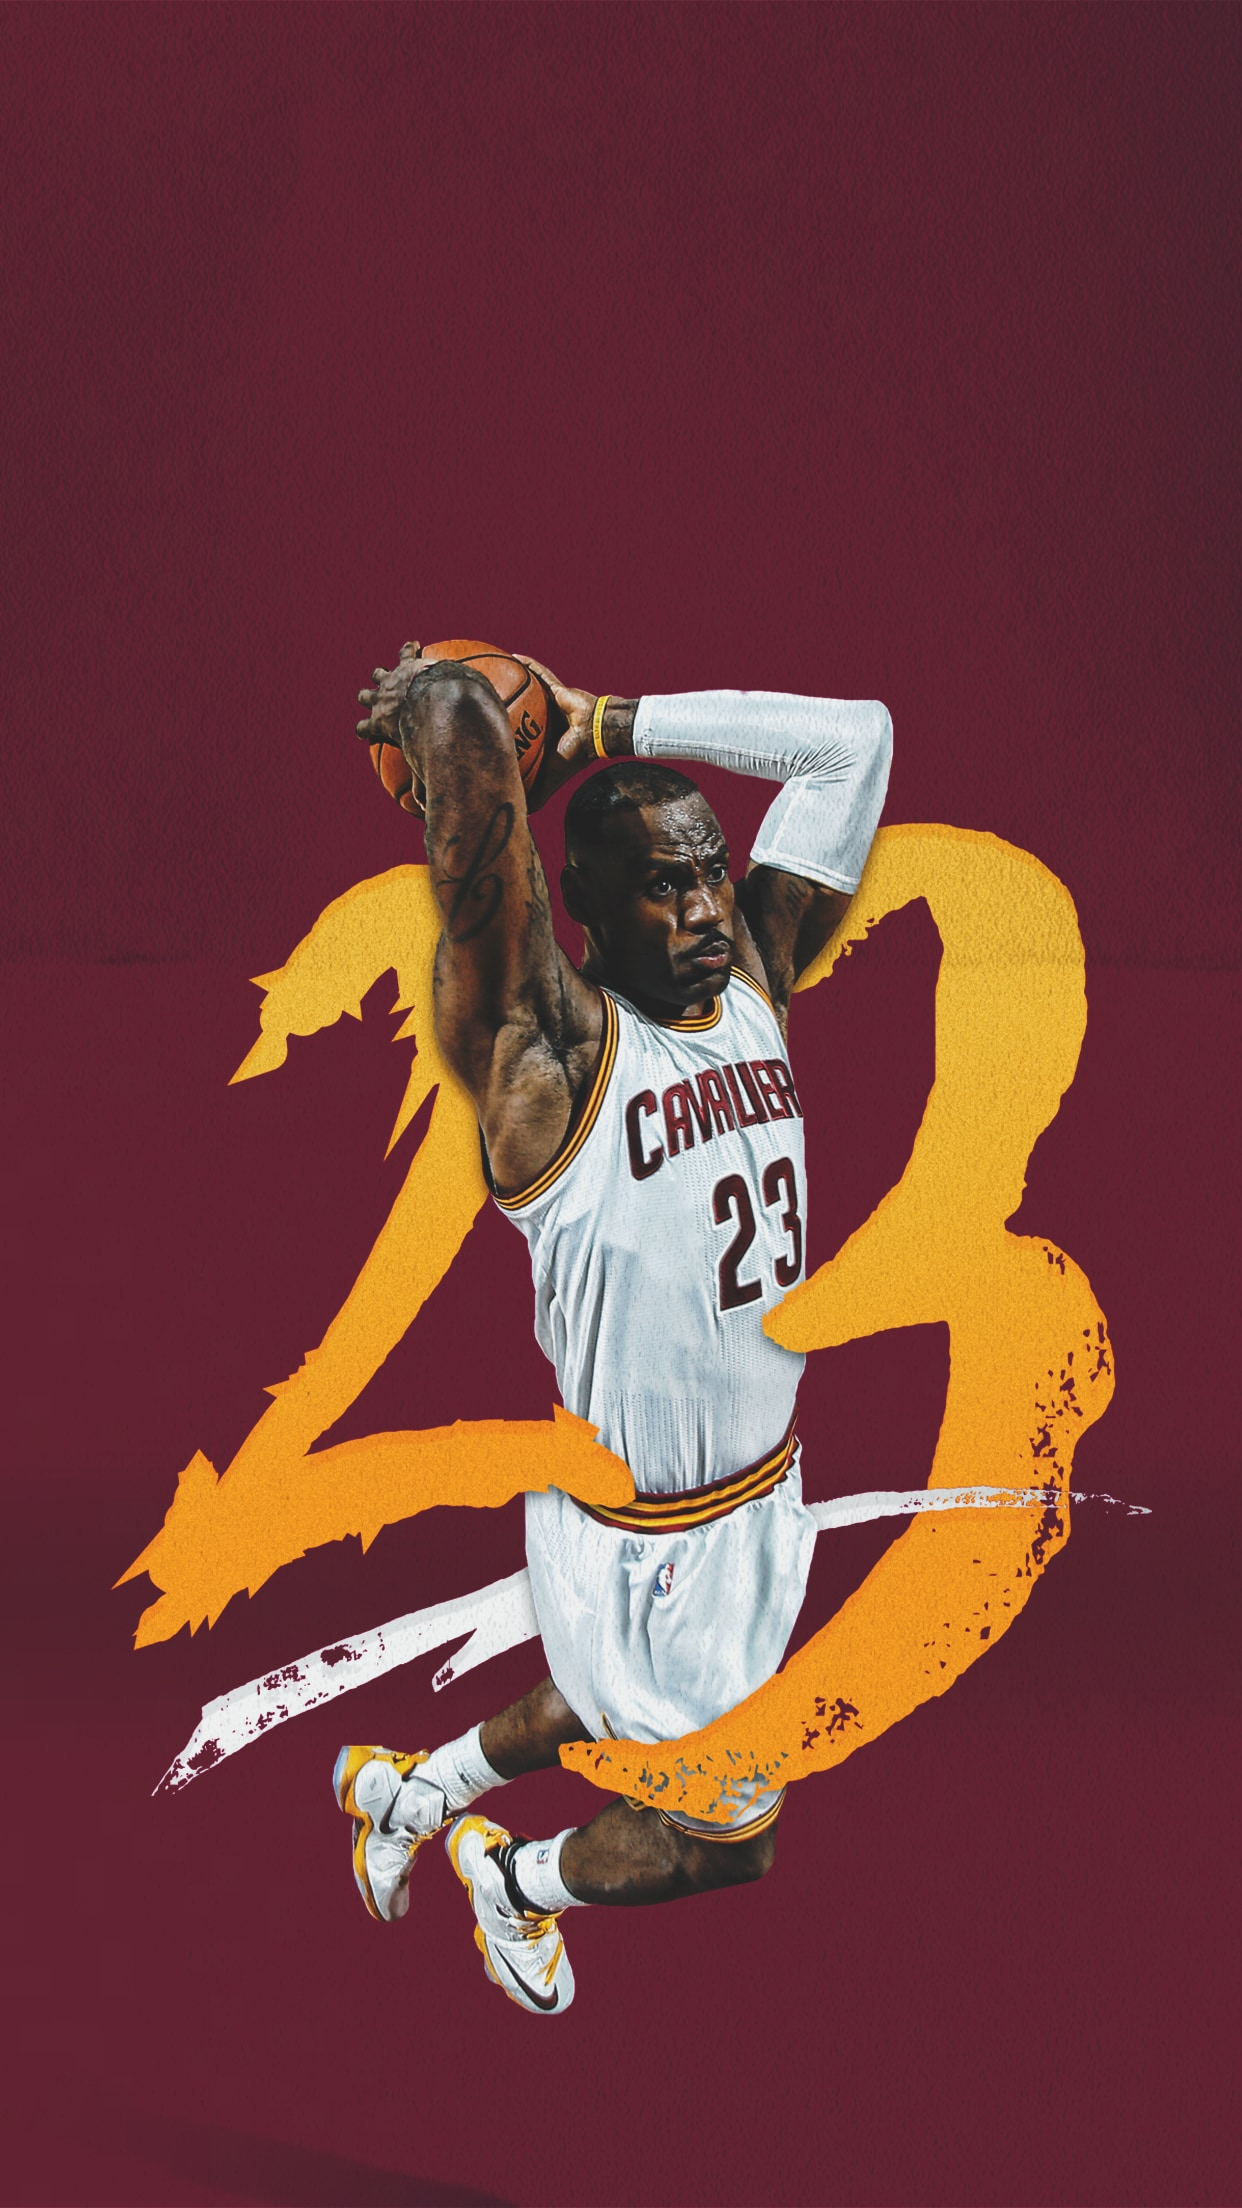 Wallpapers cleveland cavaliers - Iphone 4 basketball wallpaper ...